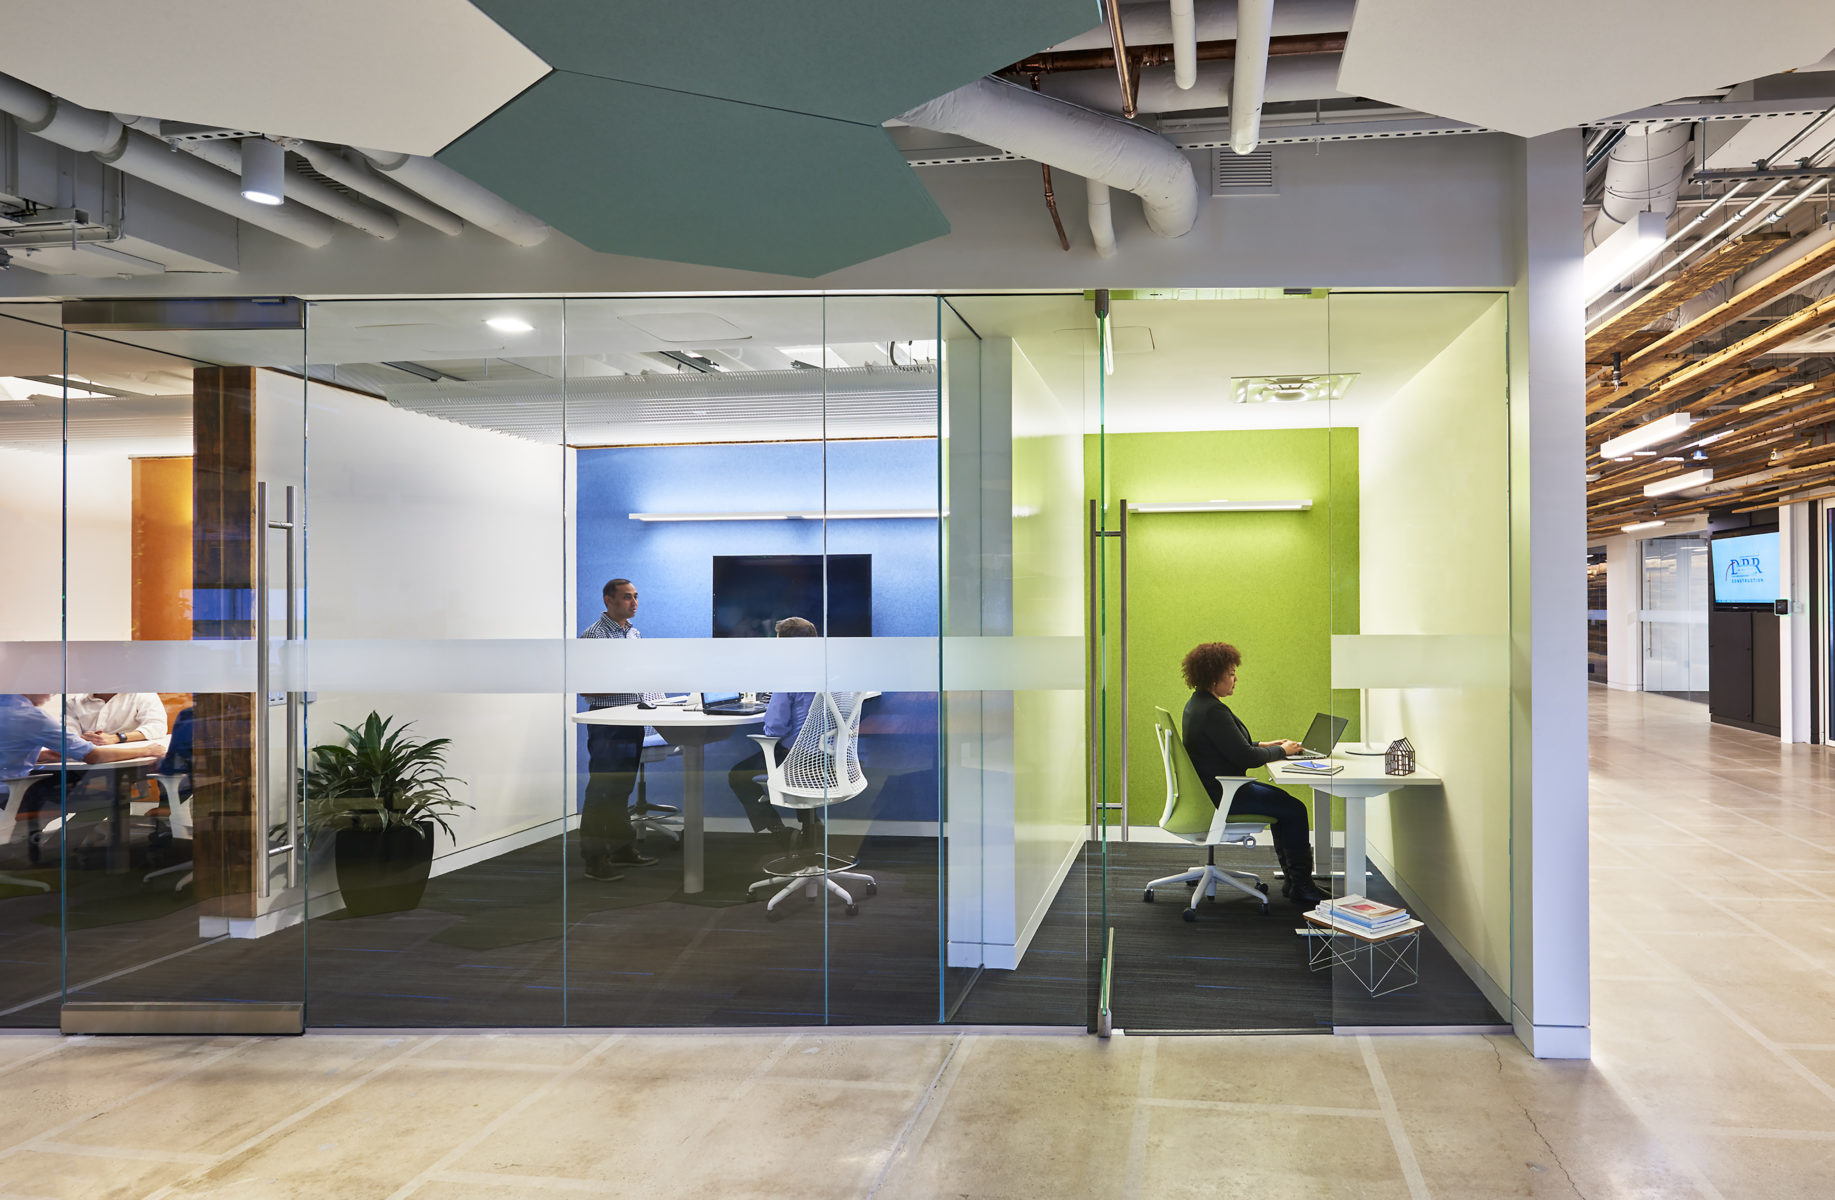 Meeting rooms with brightly colored accent walls and glass fronts.